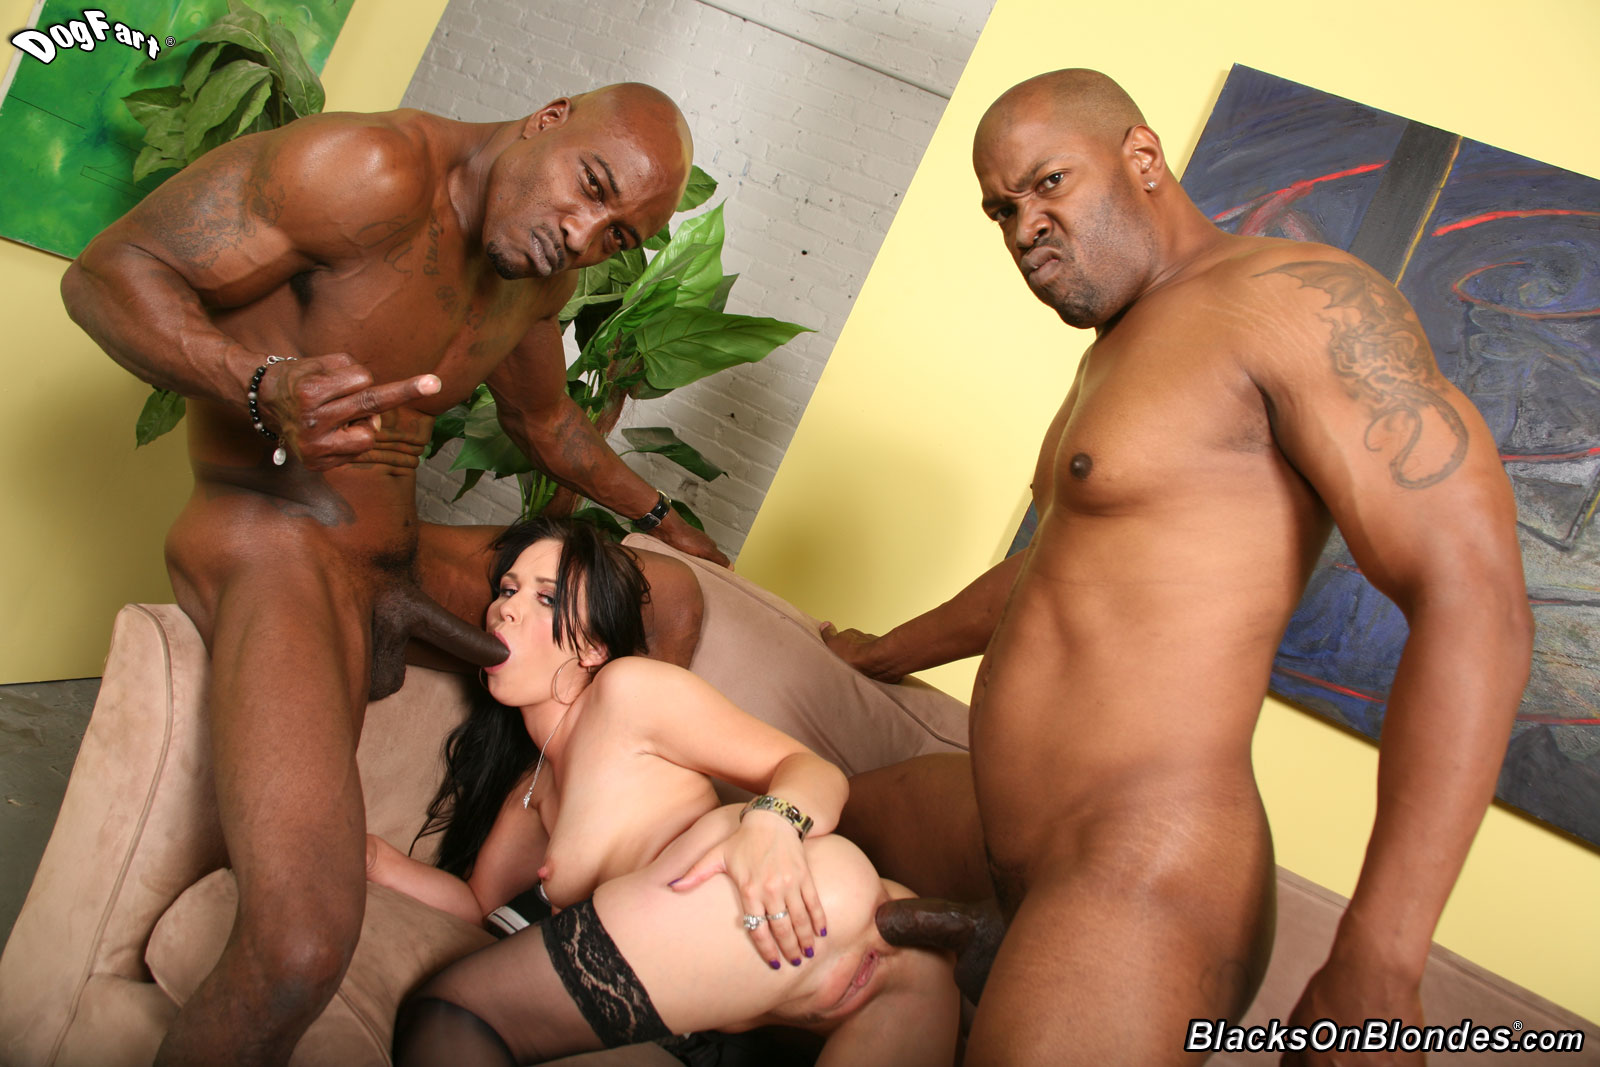 Porn monster black cocks fucking women girls  pron scene